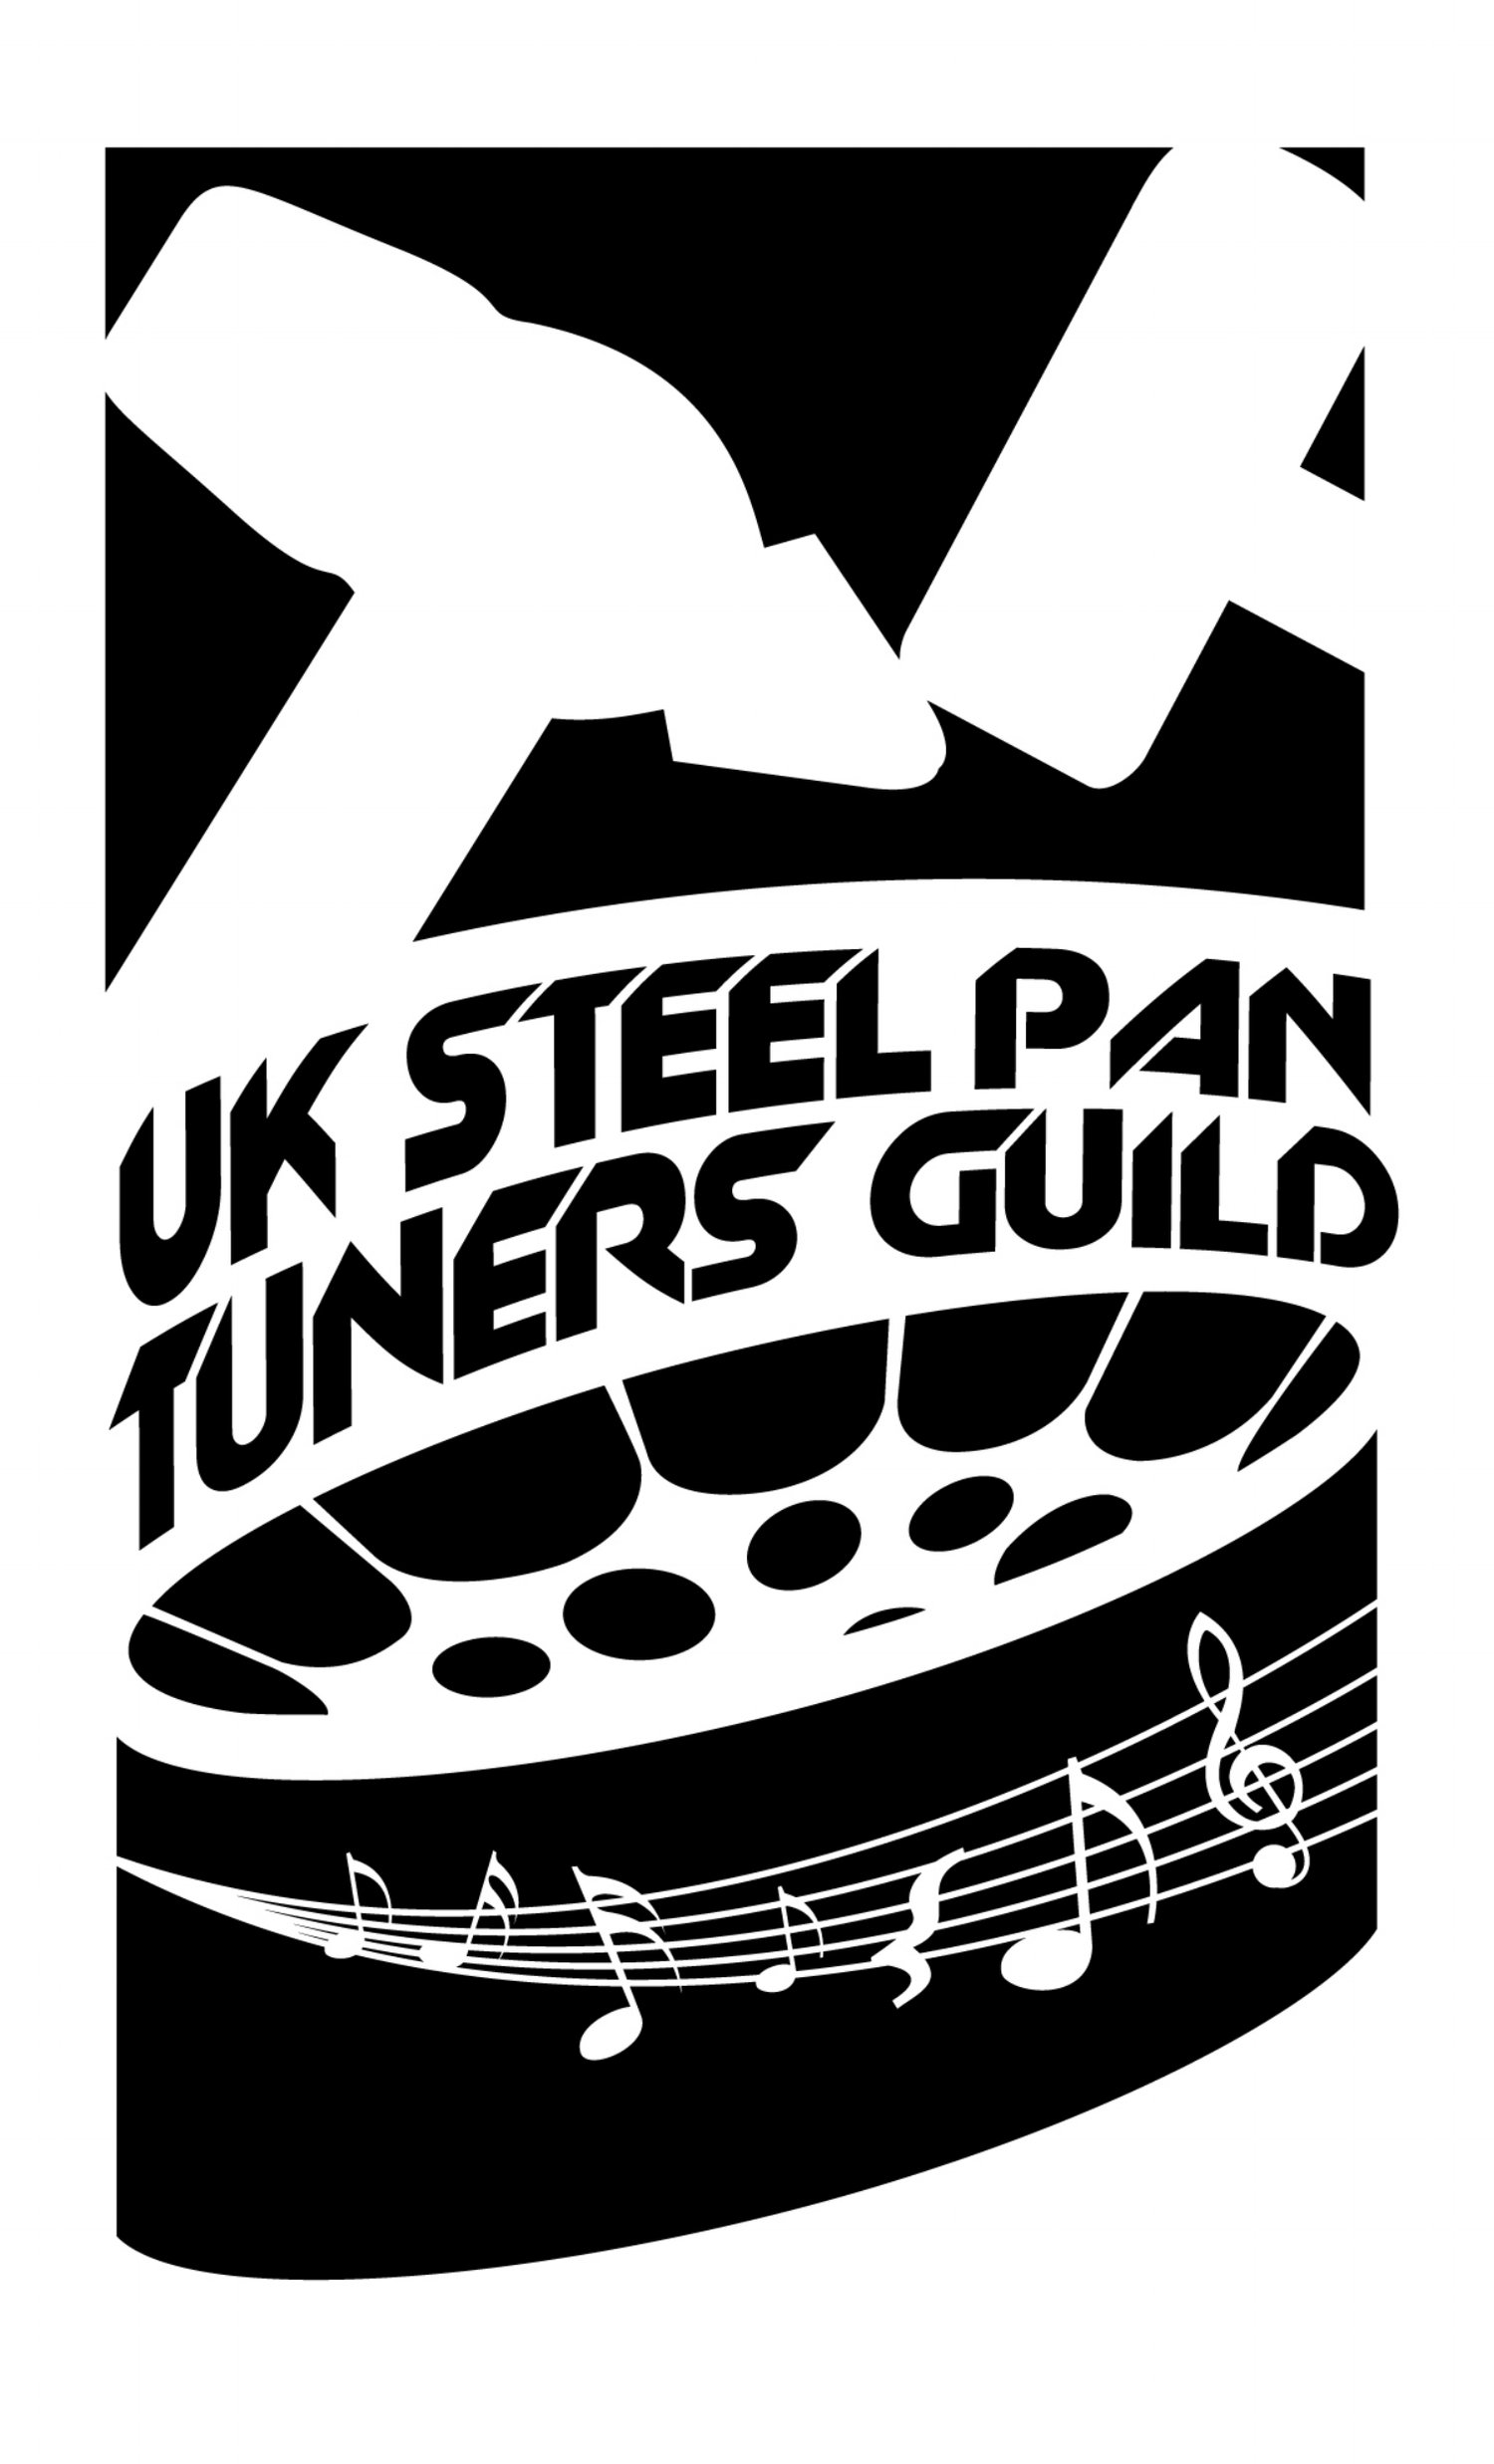 UK Steel Pan Tuners Guild